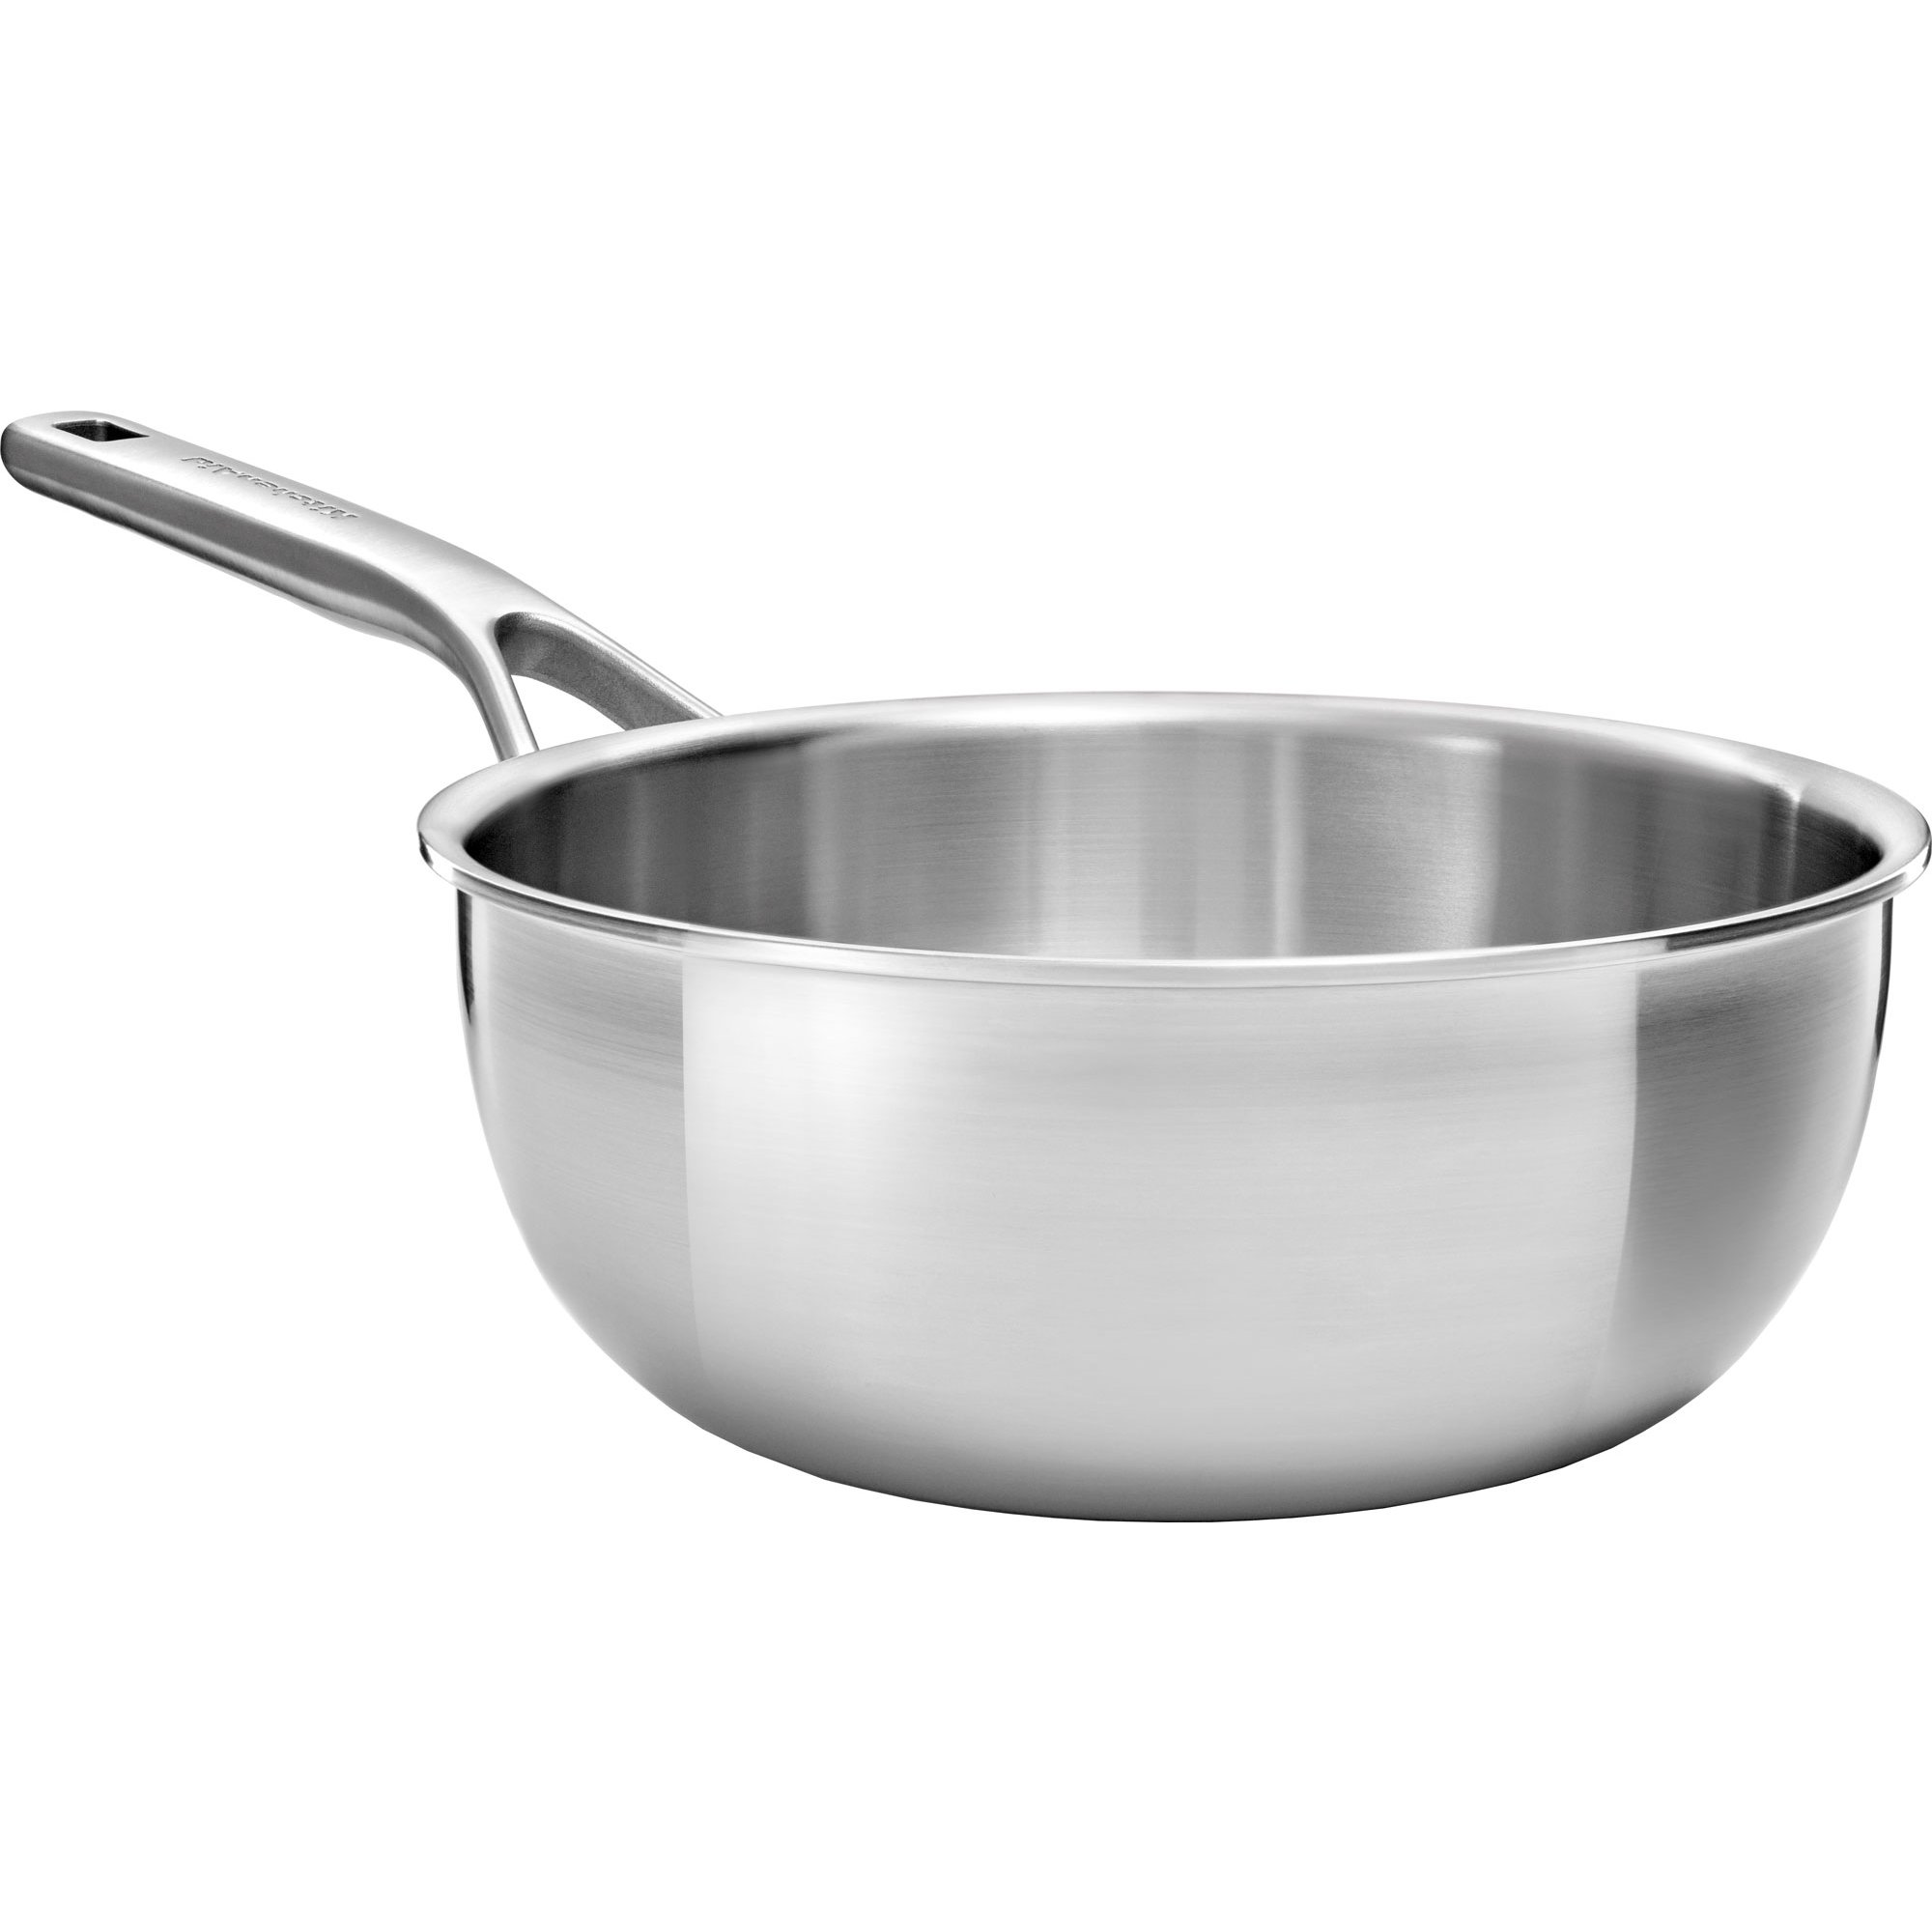 KitchenAid Cookware Collection Chef's Pan 20 cm